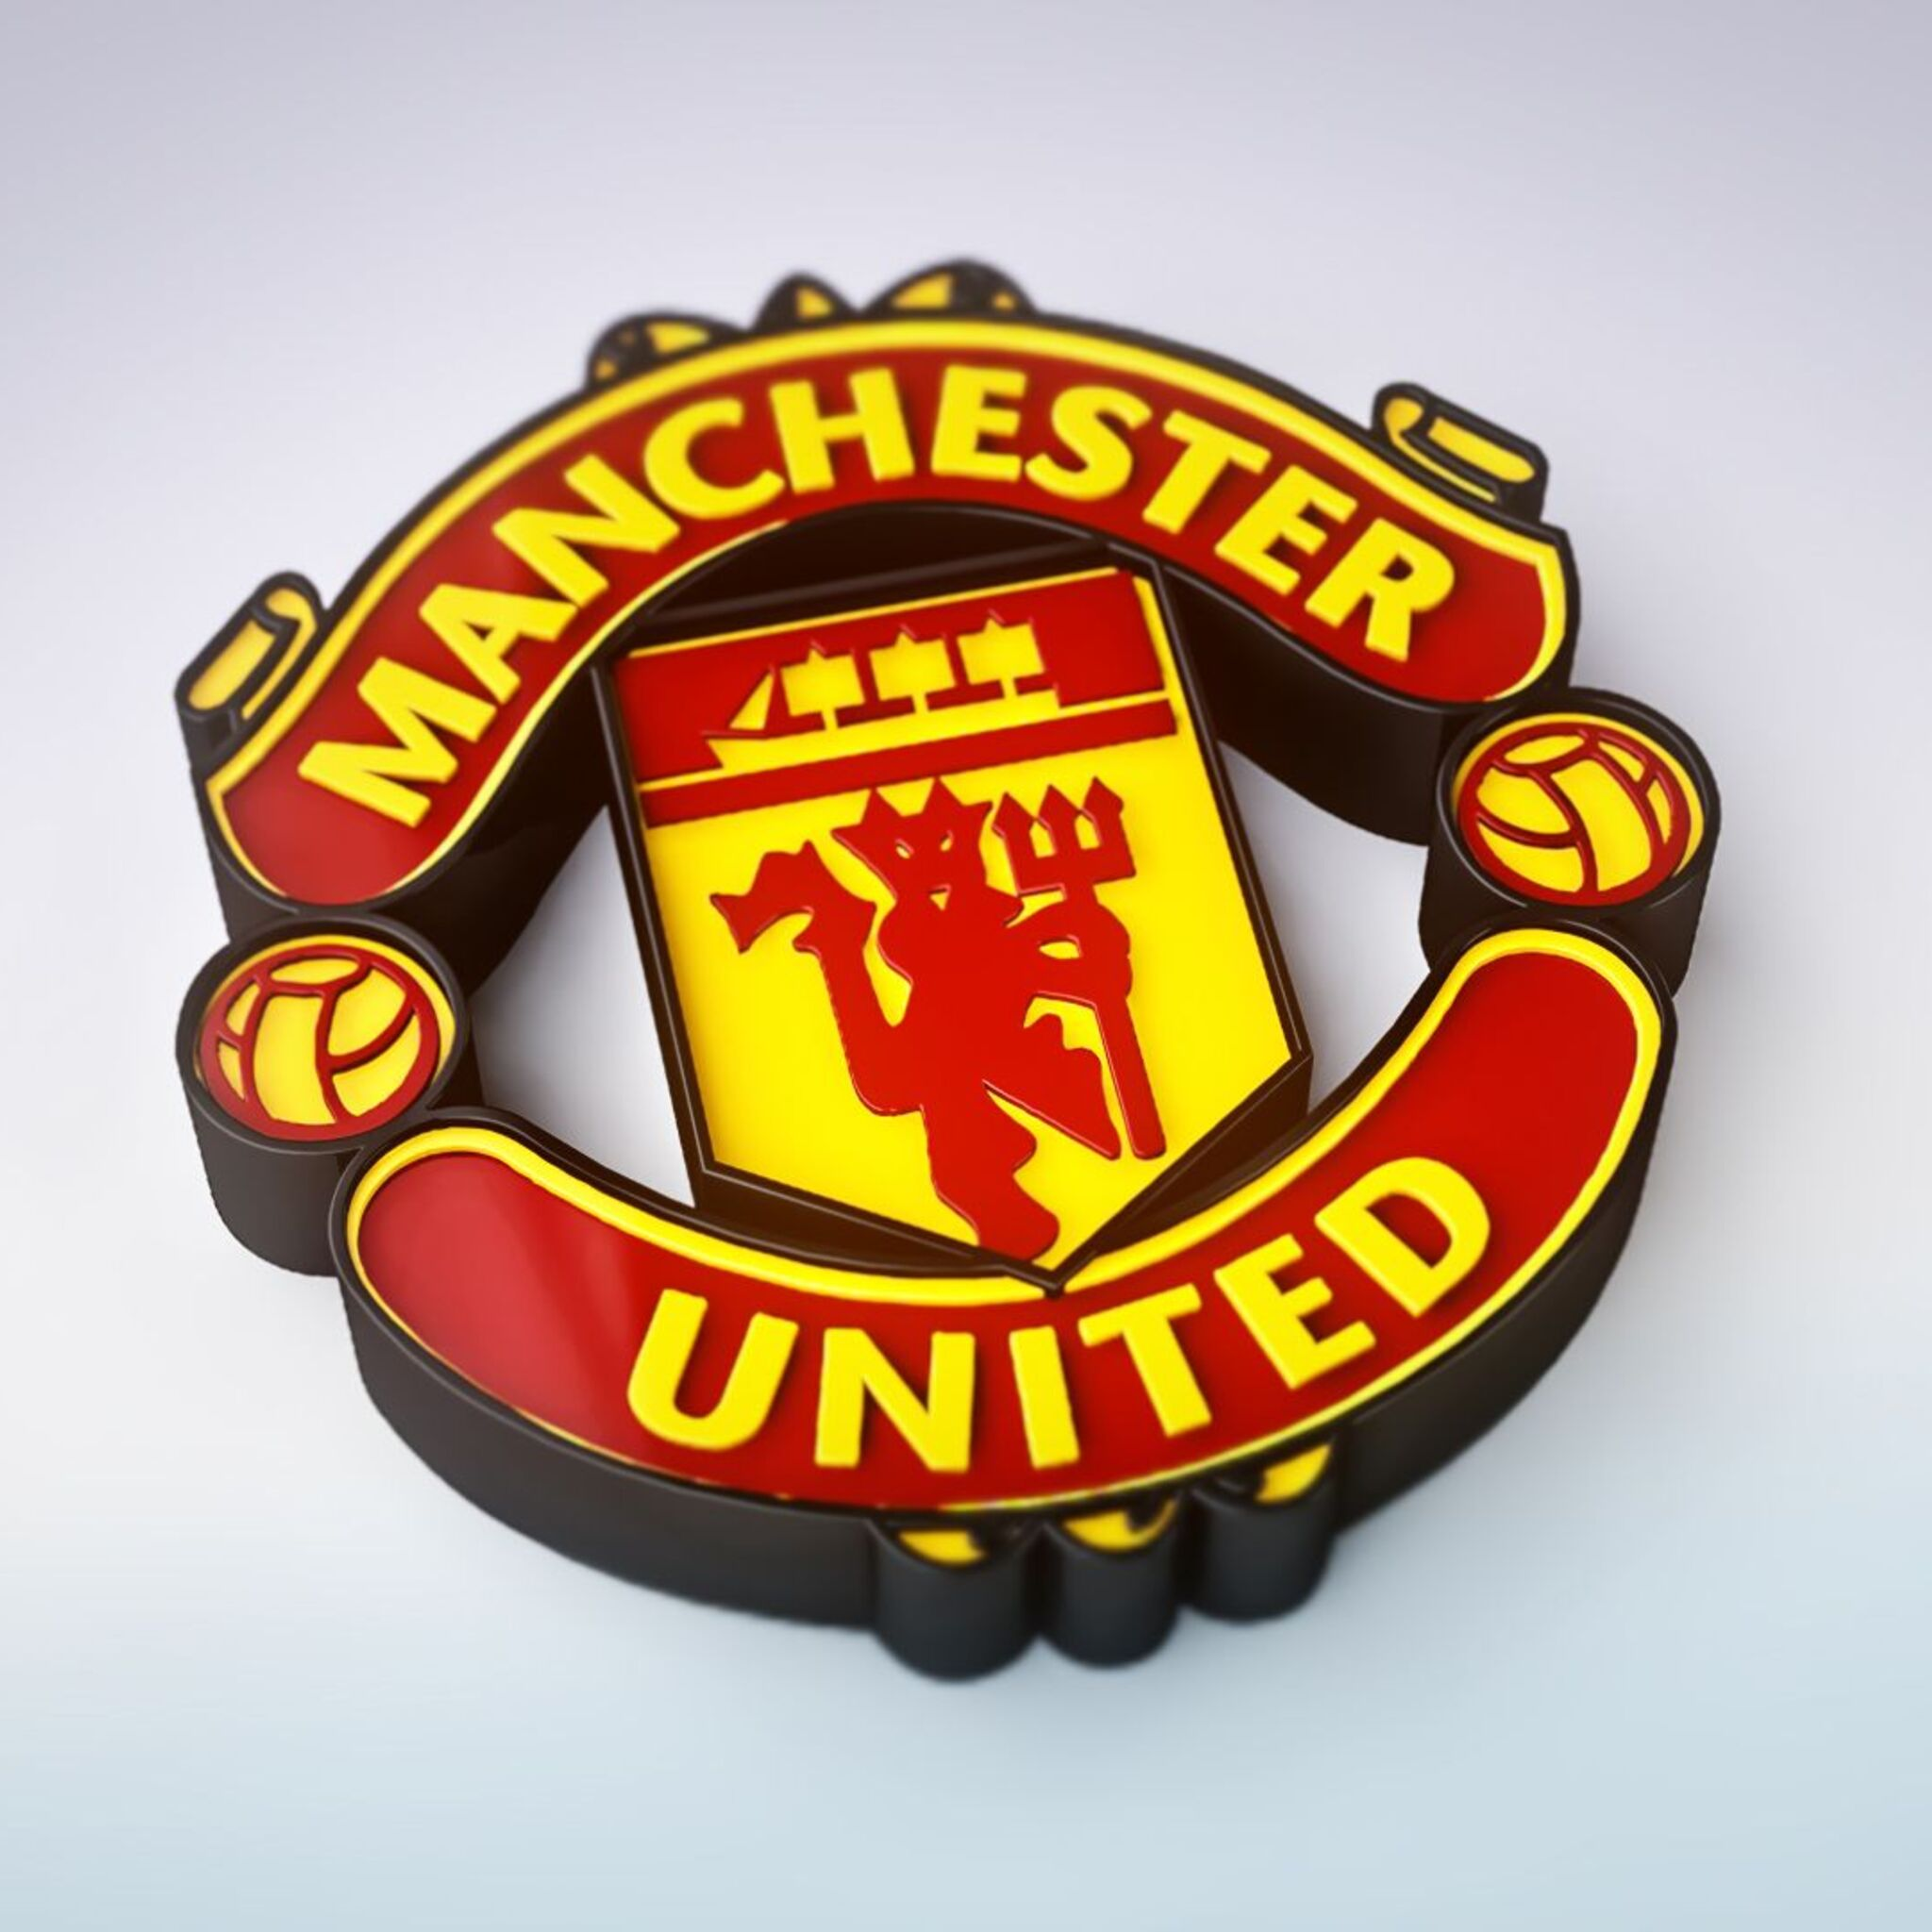 2048x2048 Manchester United 3D Logo Ipad Air HD 4k